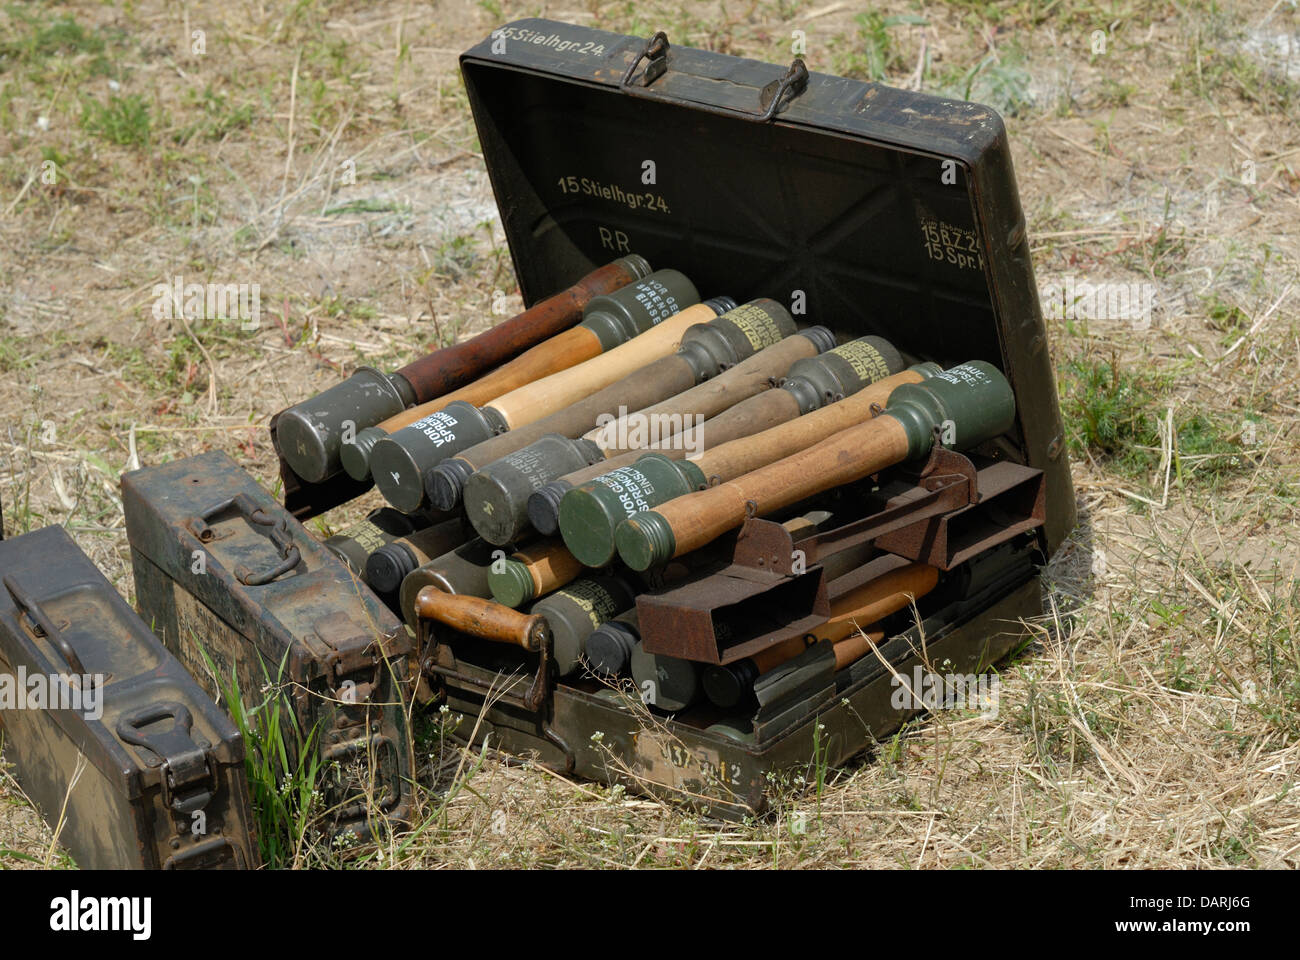 German WW2 hand grenades in box. War and Peace Revival, July 2013. Folkestone Racecourse, Kent, England, UK. - Stock Image